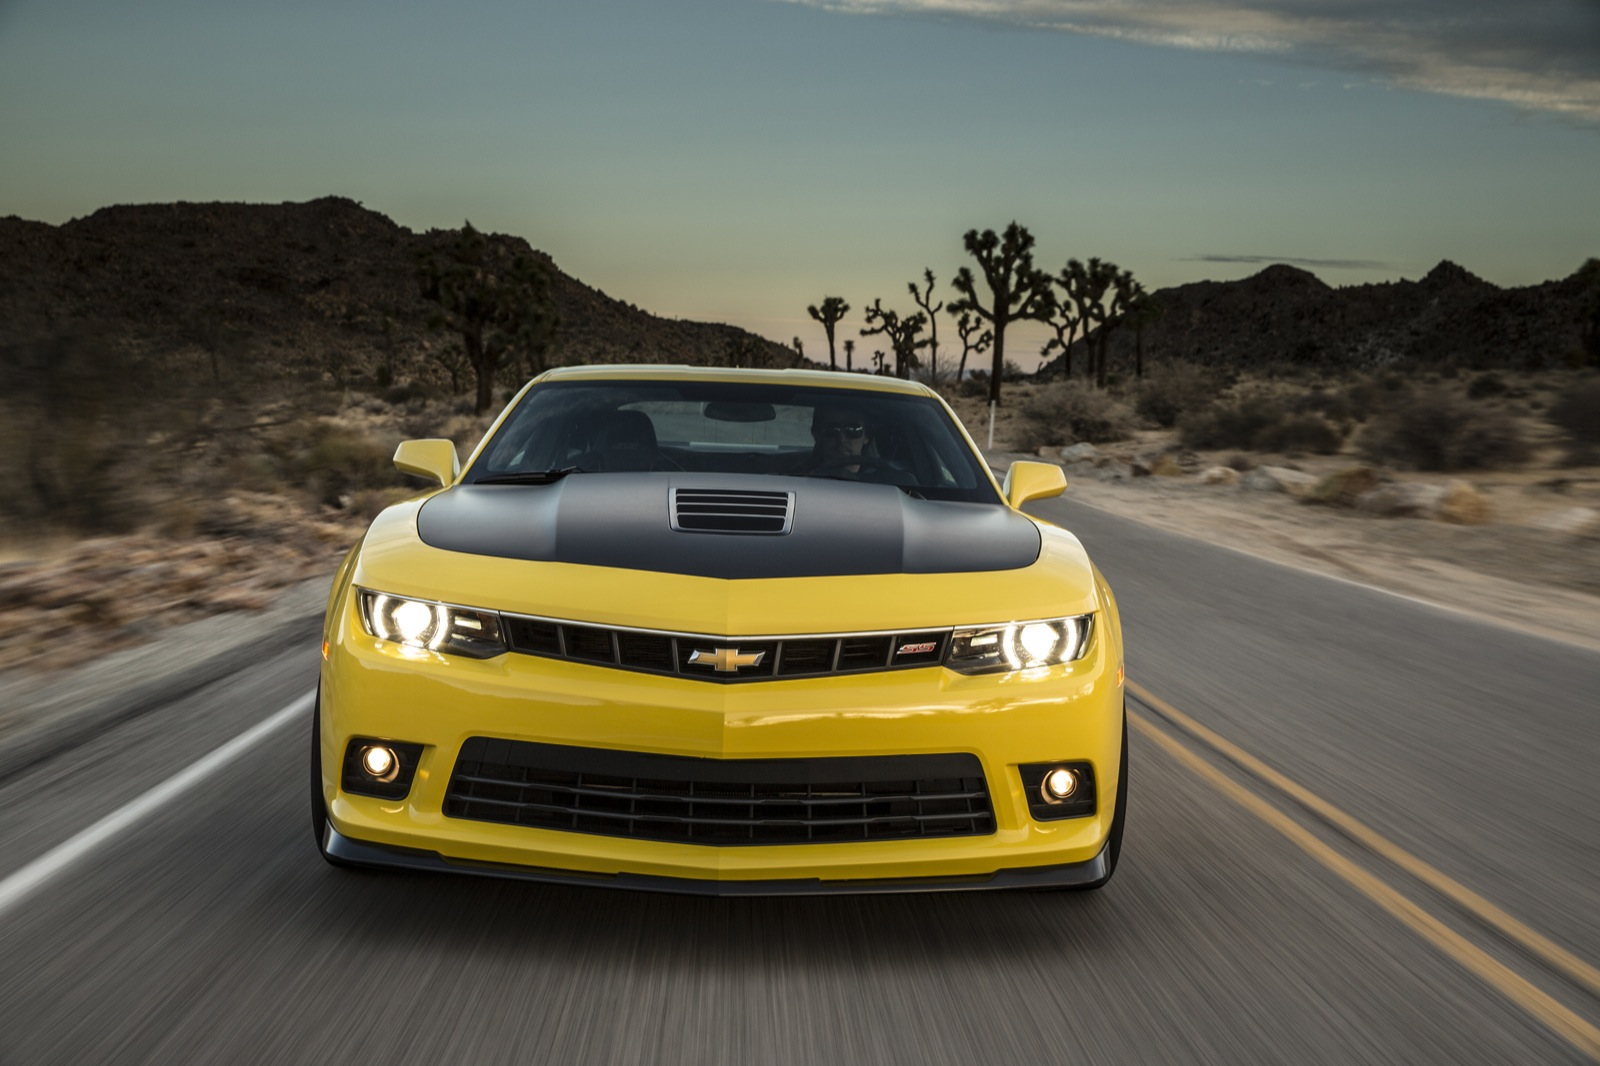 2016 Chevy Camaro To Grow In Size, Offer 4-Cylinder Power: Report